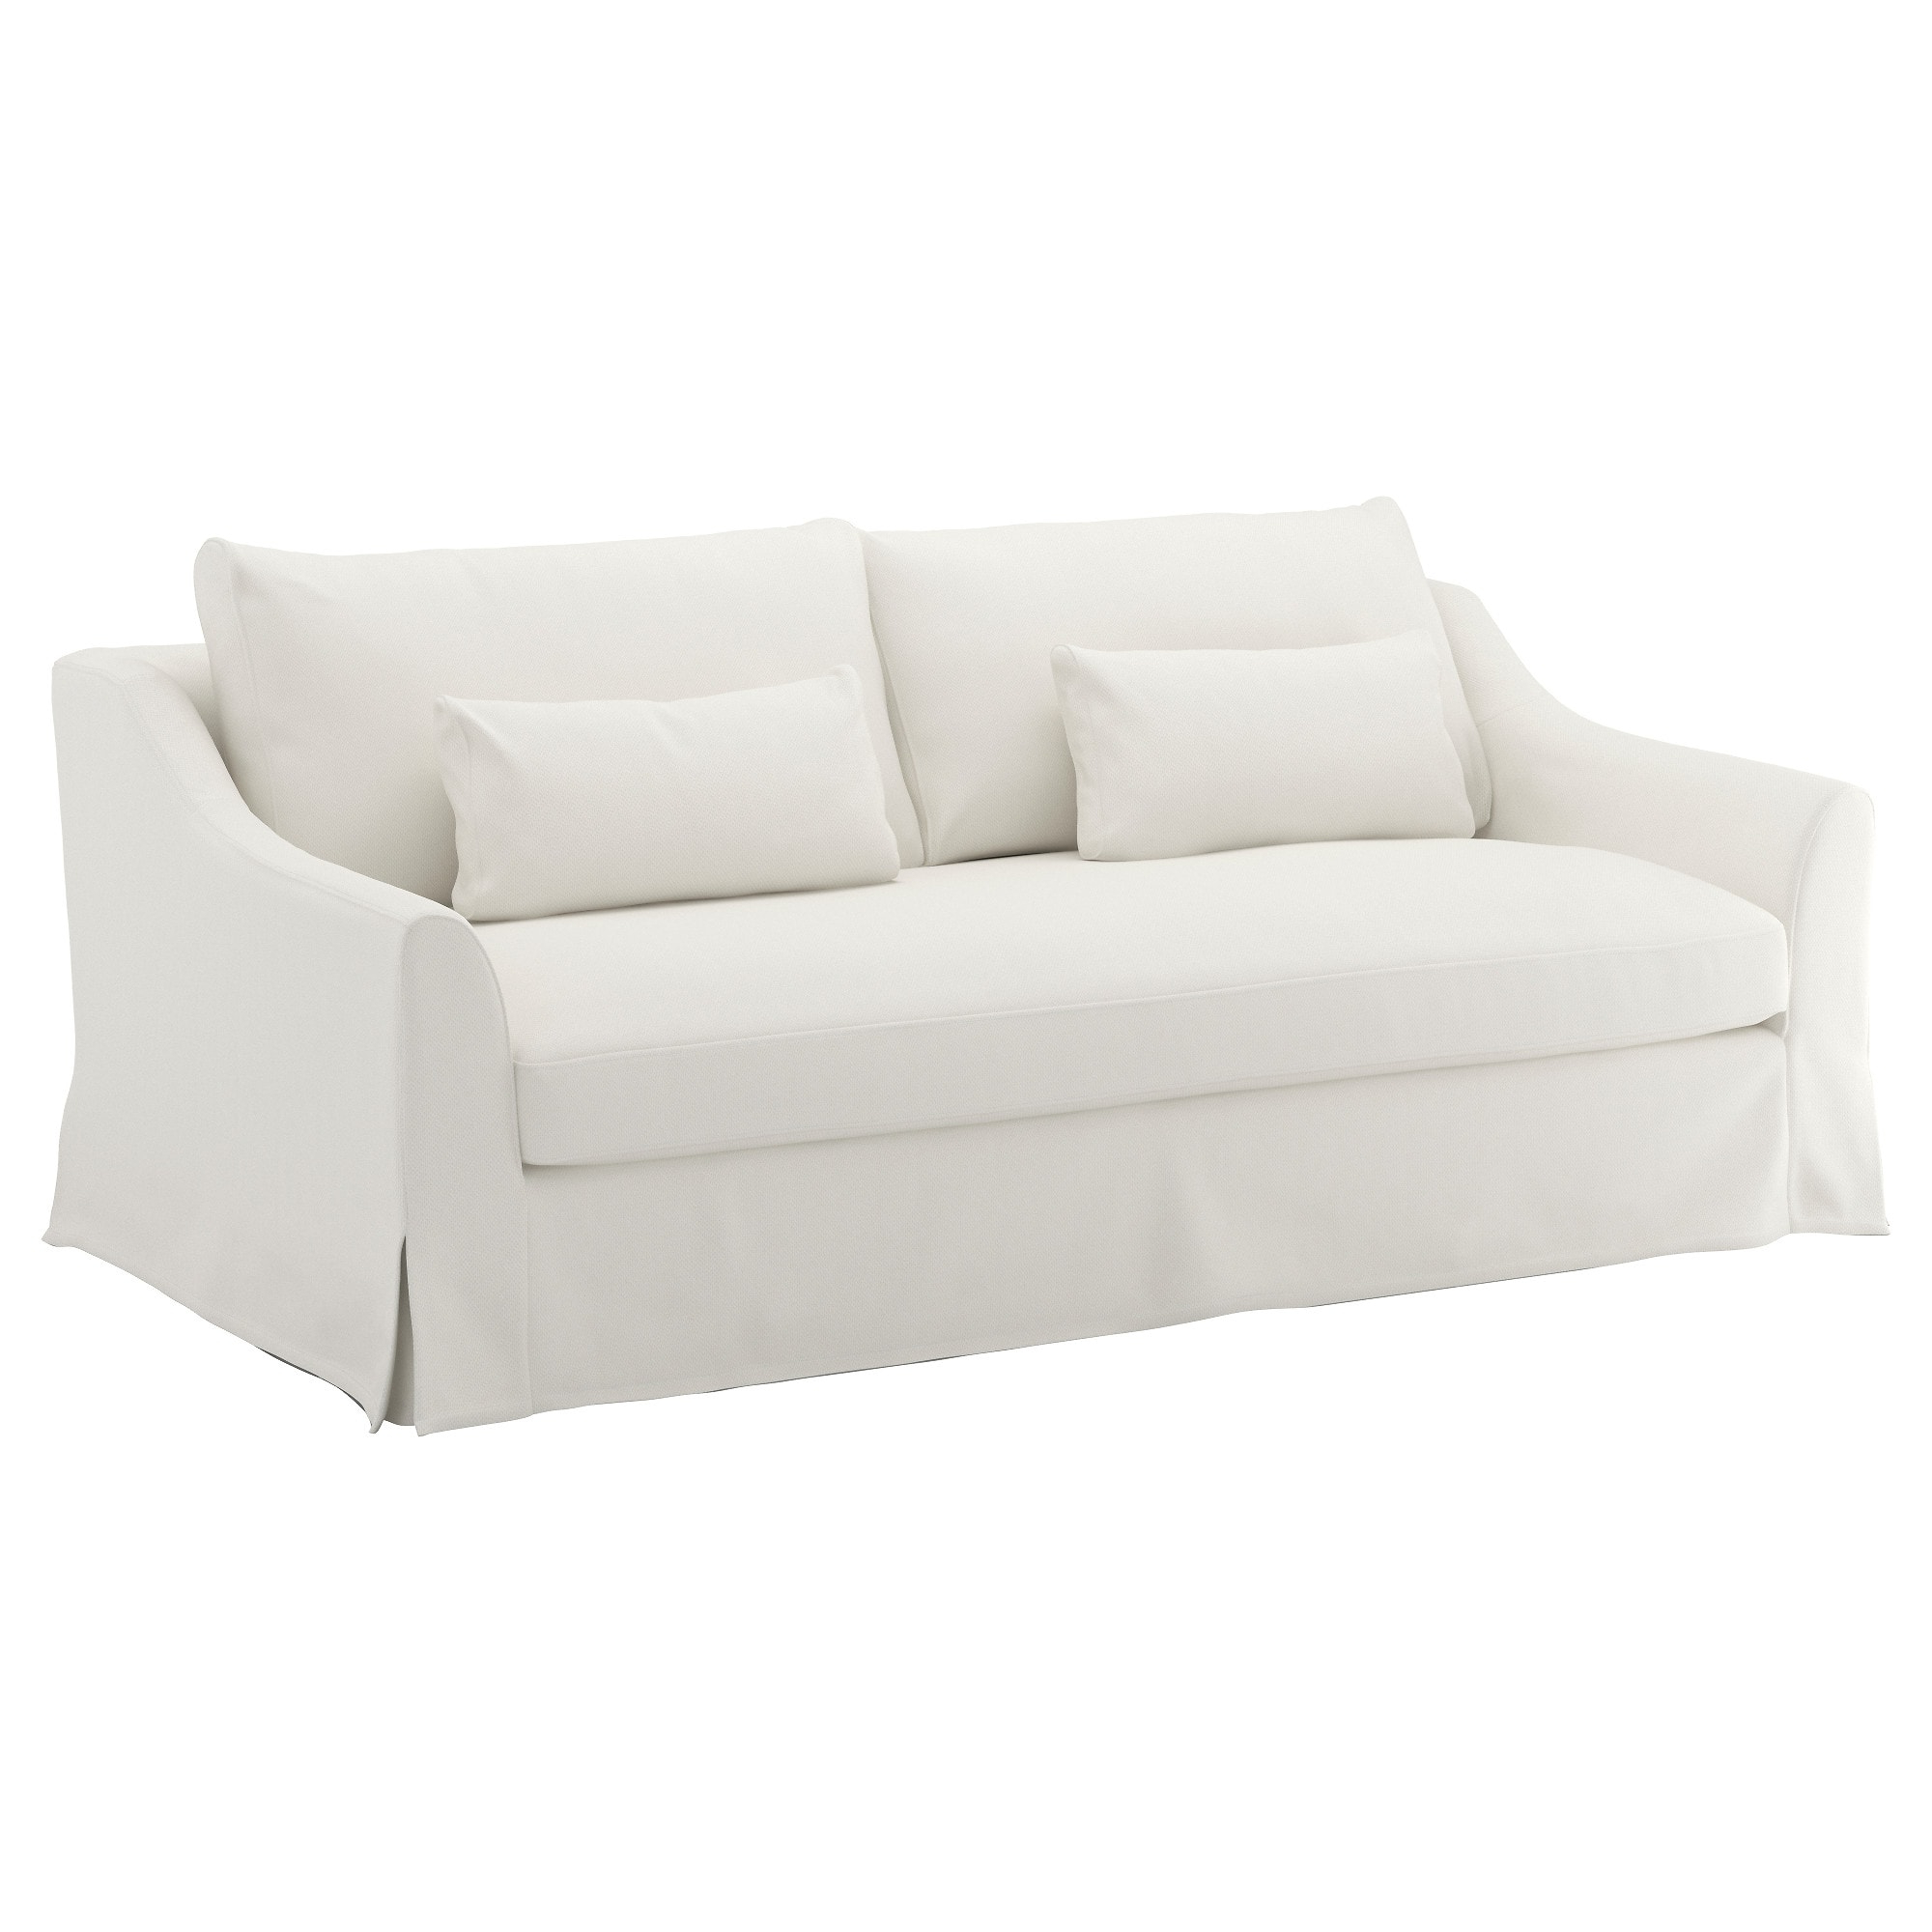 Well Known Färlöv 3 Seat Sofa Flodafors White – Ikea Pertaining To Ikea Sofa Chairs (View 18 of 20)